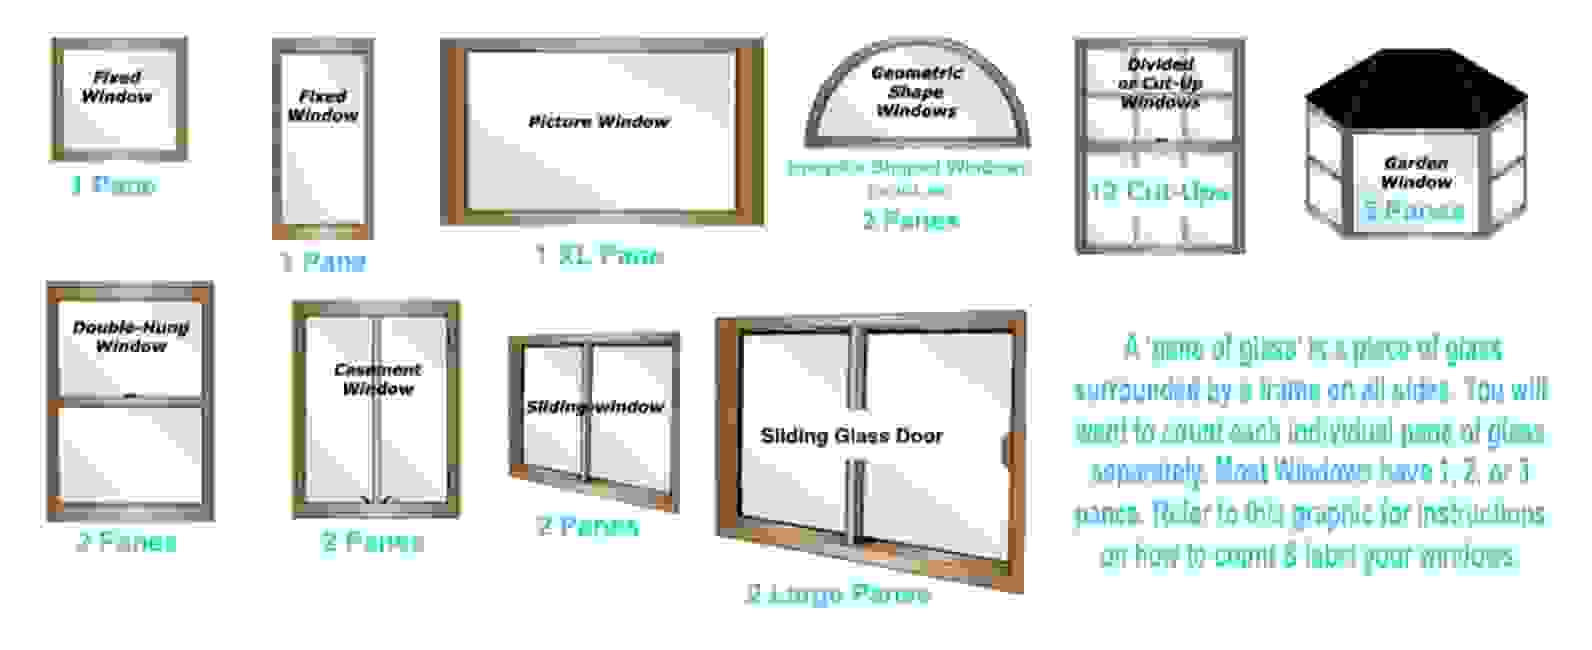 How to make a window pane count to build a quote.